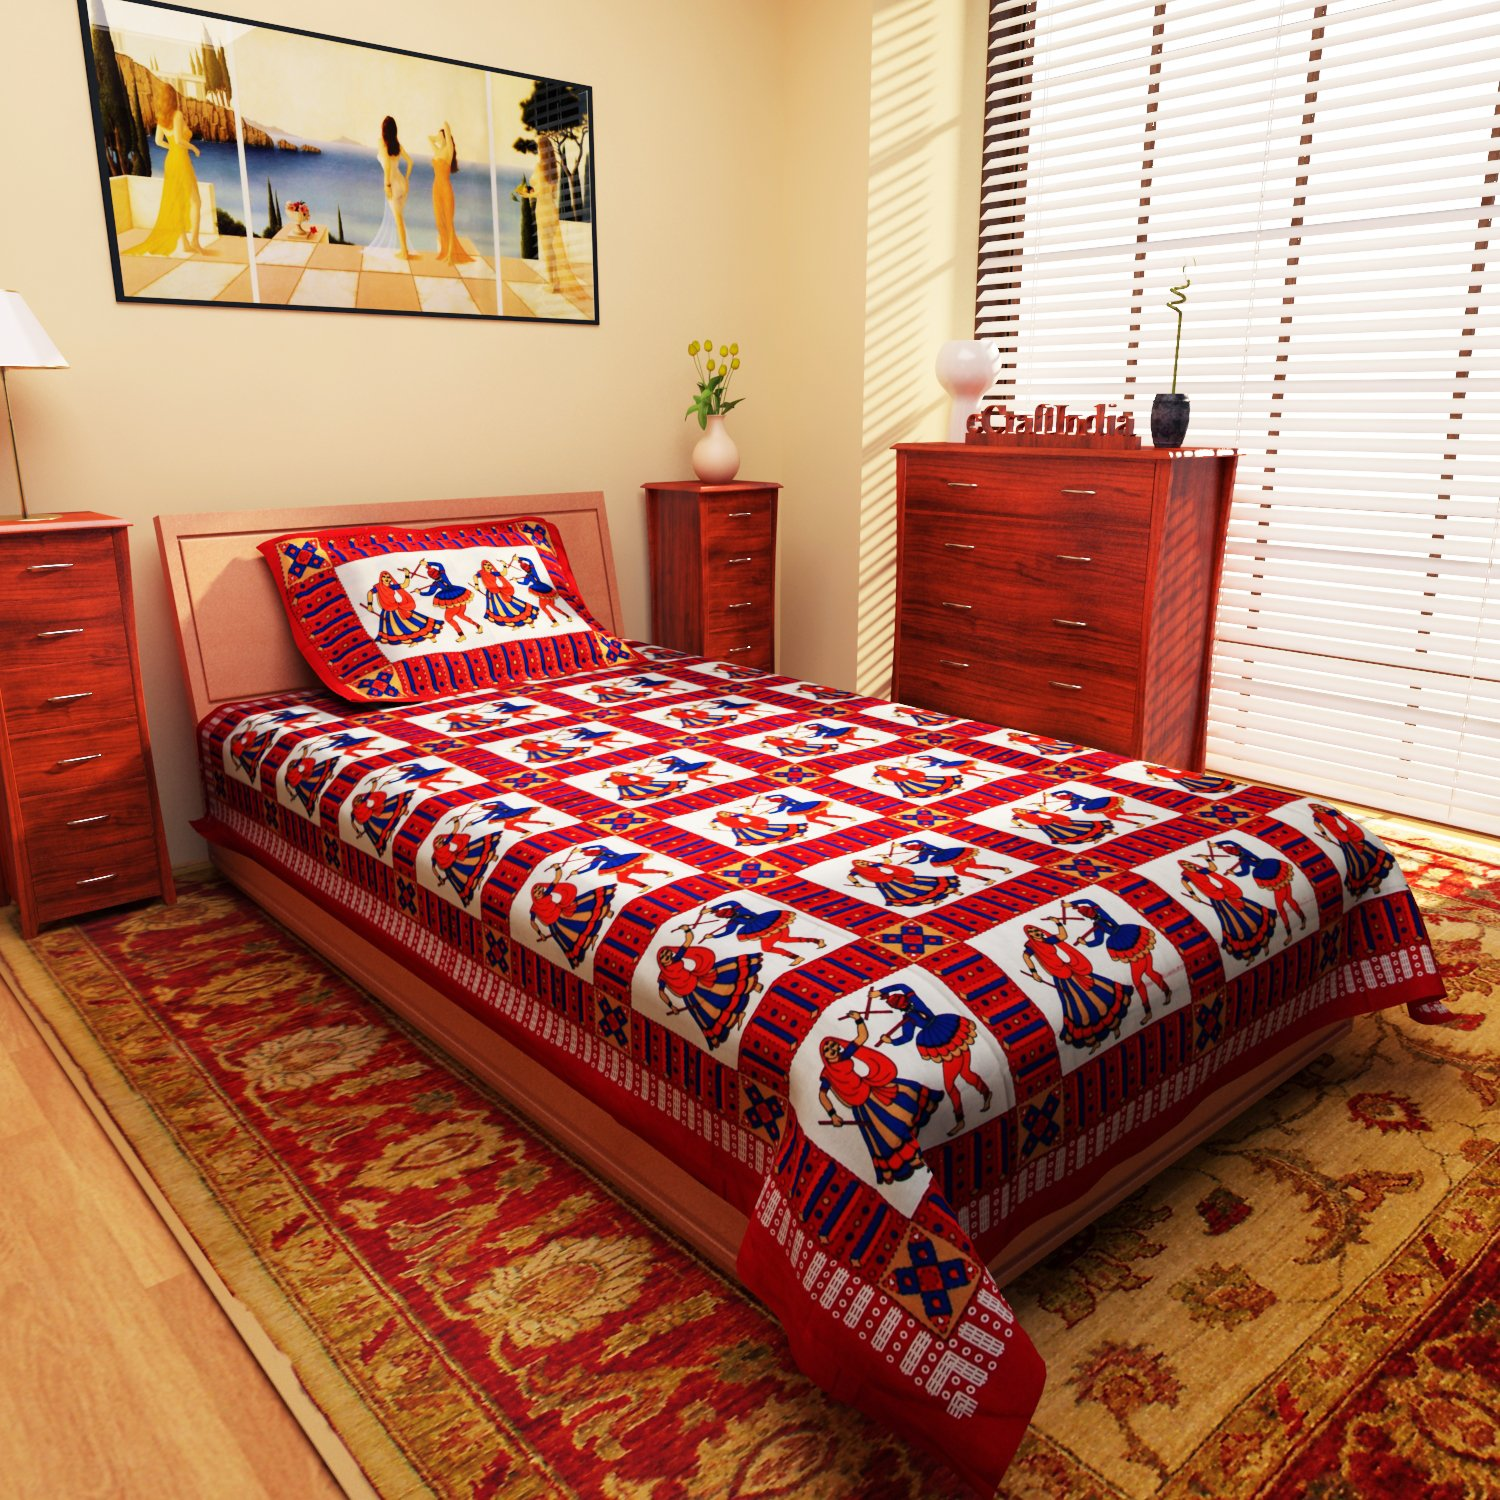 eCraftIndia Couple Playing Dandia Red Design Cotton Single Bedsheet with 1 Pillow Cover By Amazon @ Rs.339